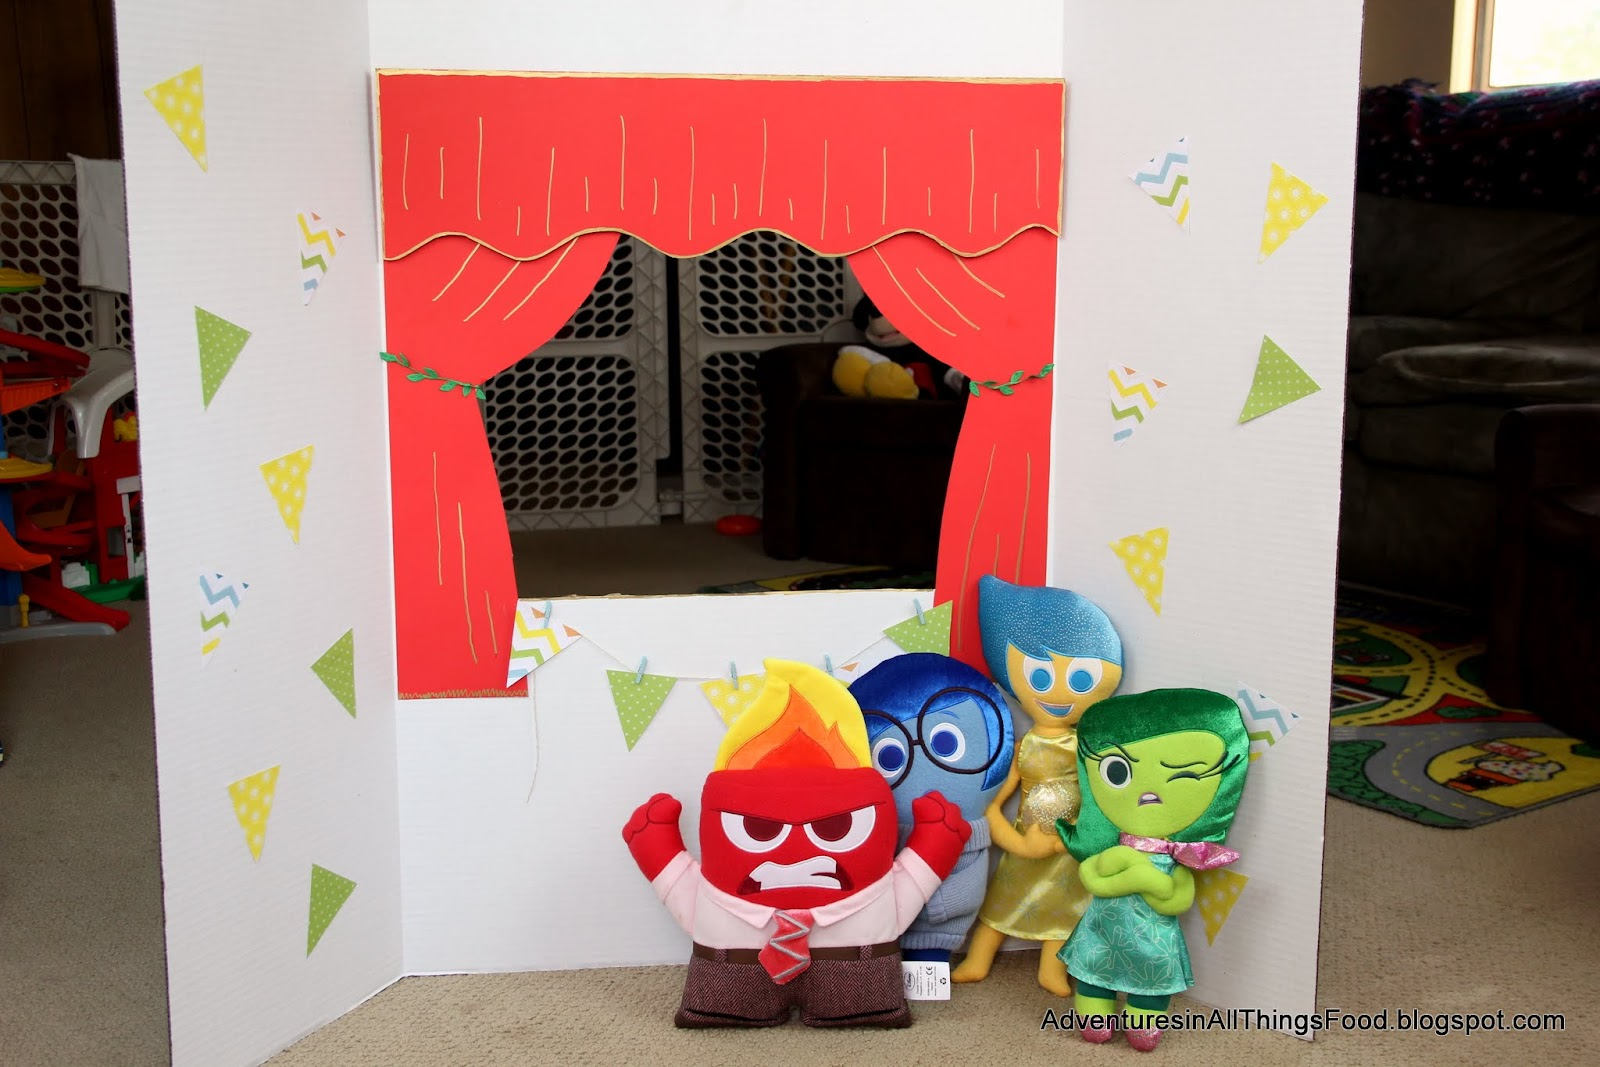 adventures in all things food: diy puppet theater - expressing